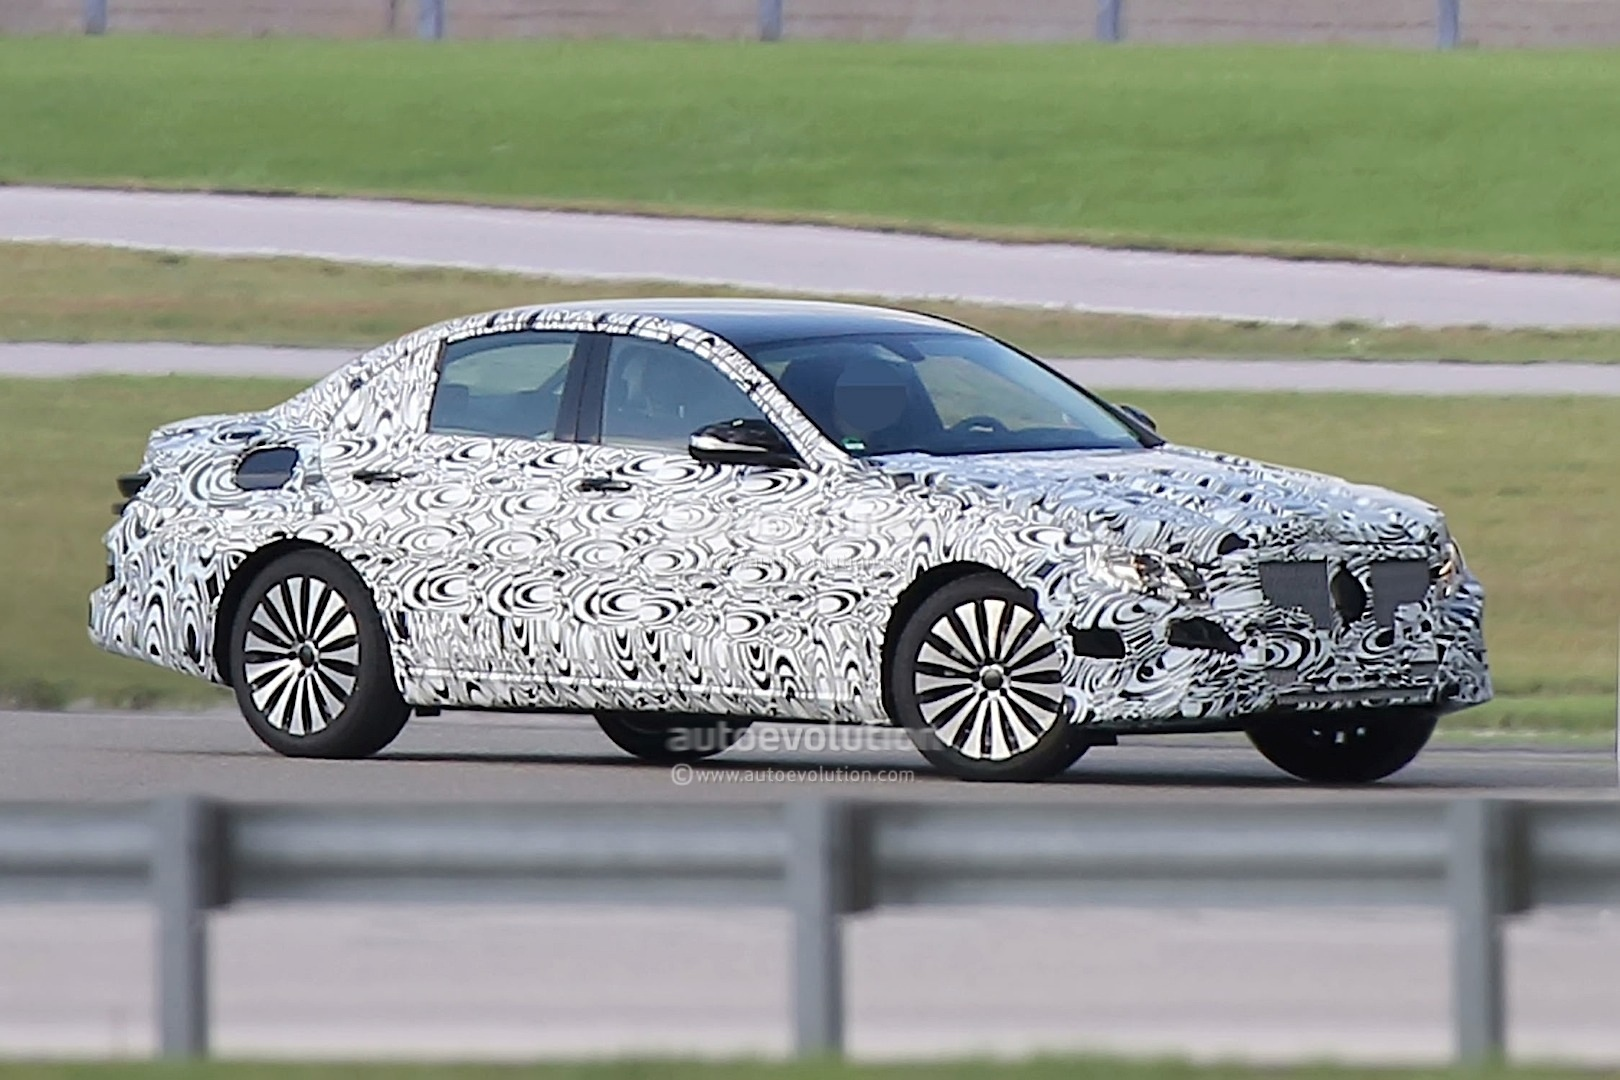 new-2016-mercedes-benz-e-class-spied-for-the-first-time_1.jpg